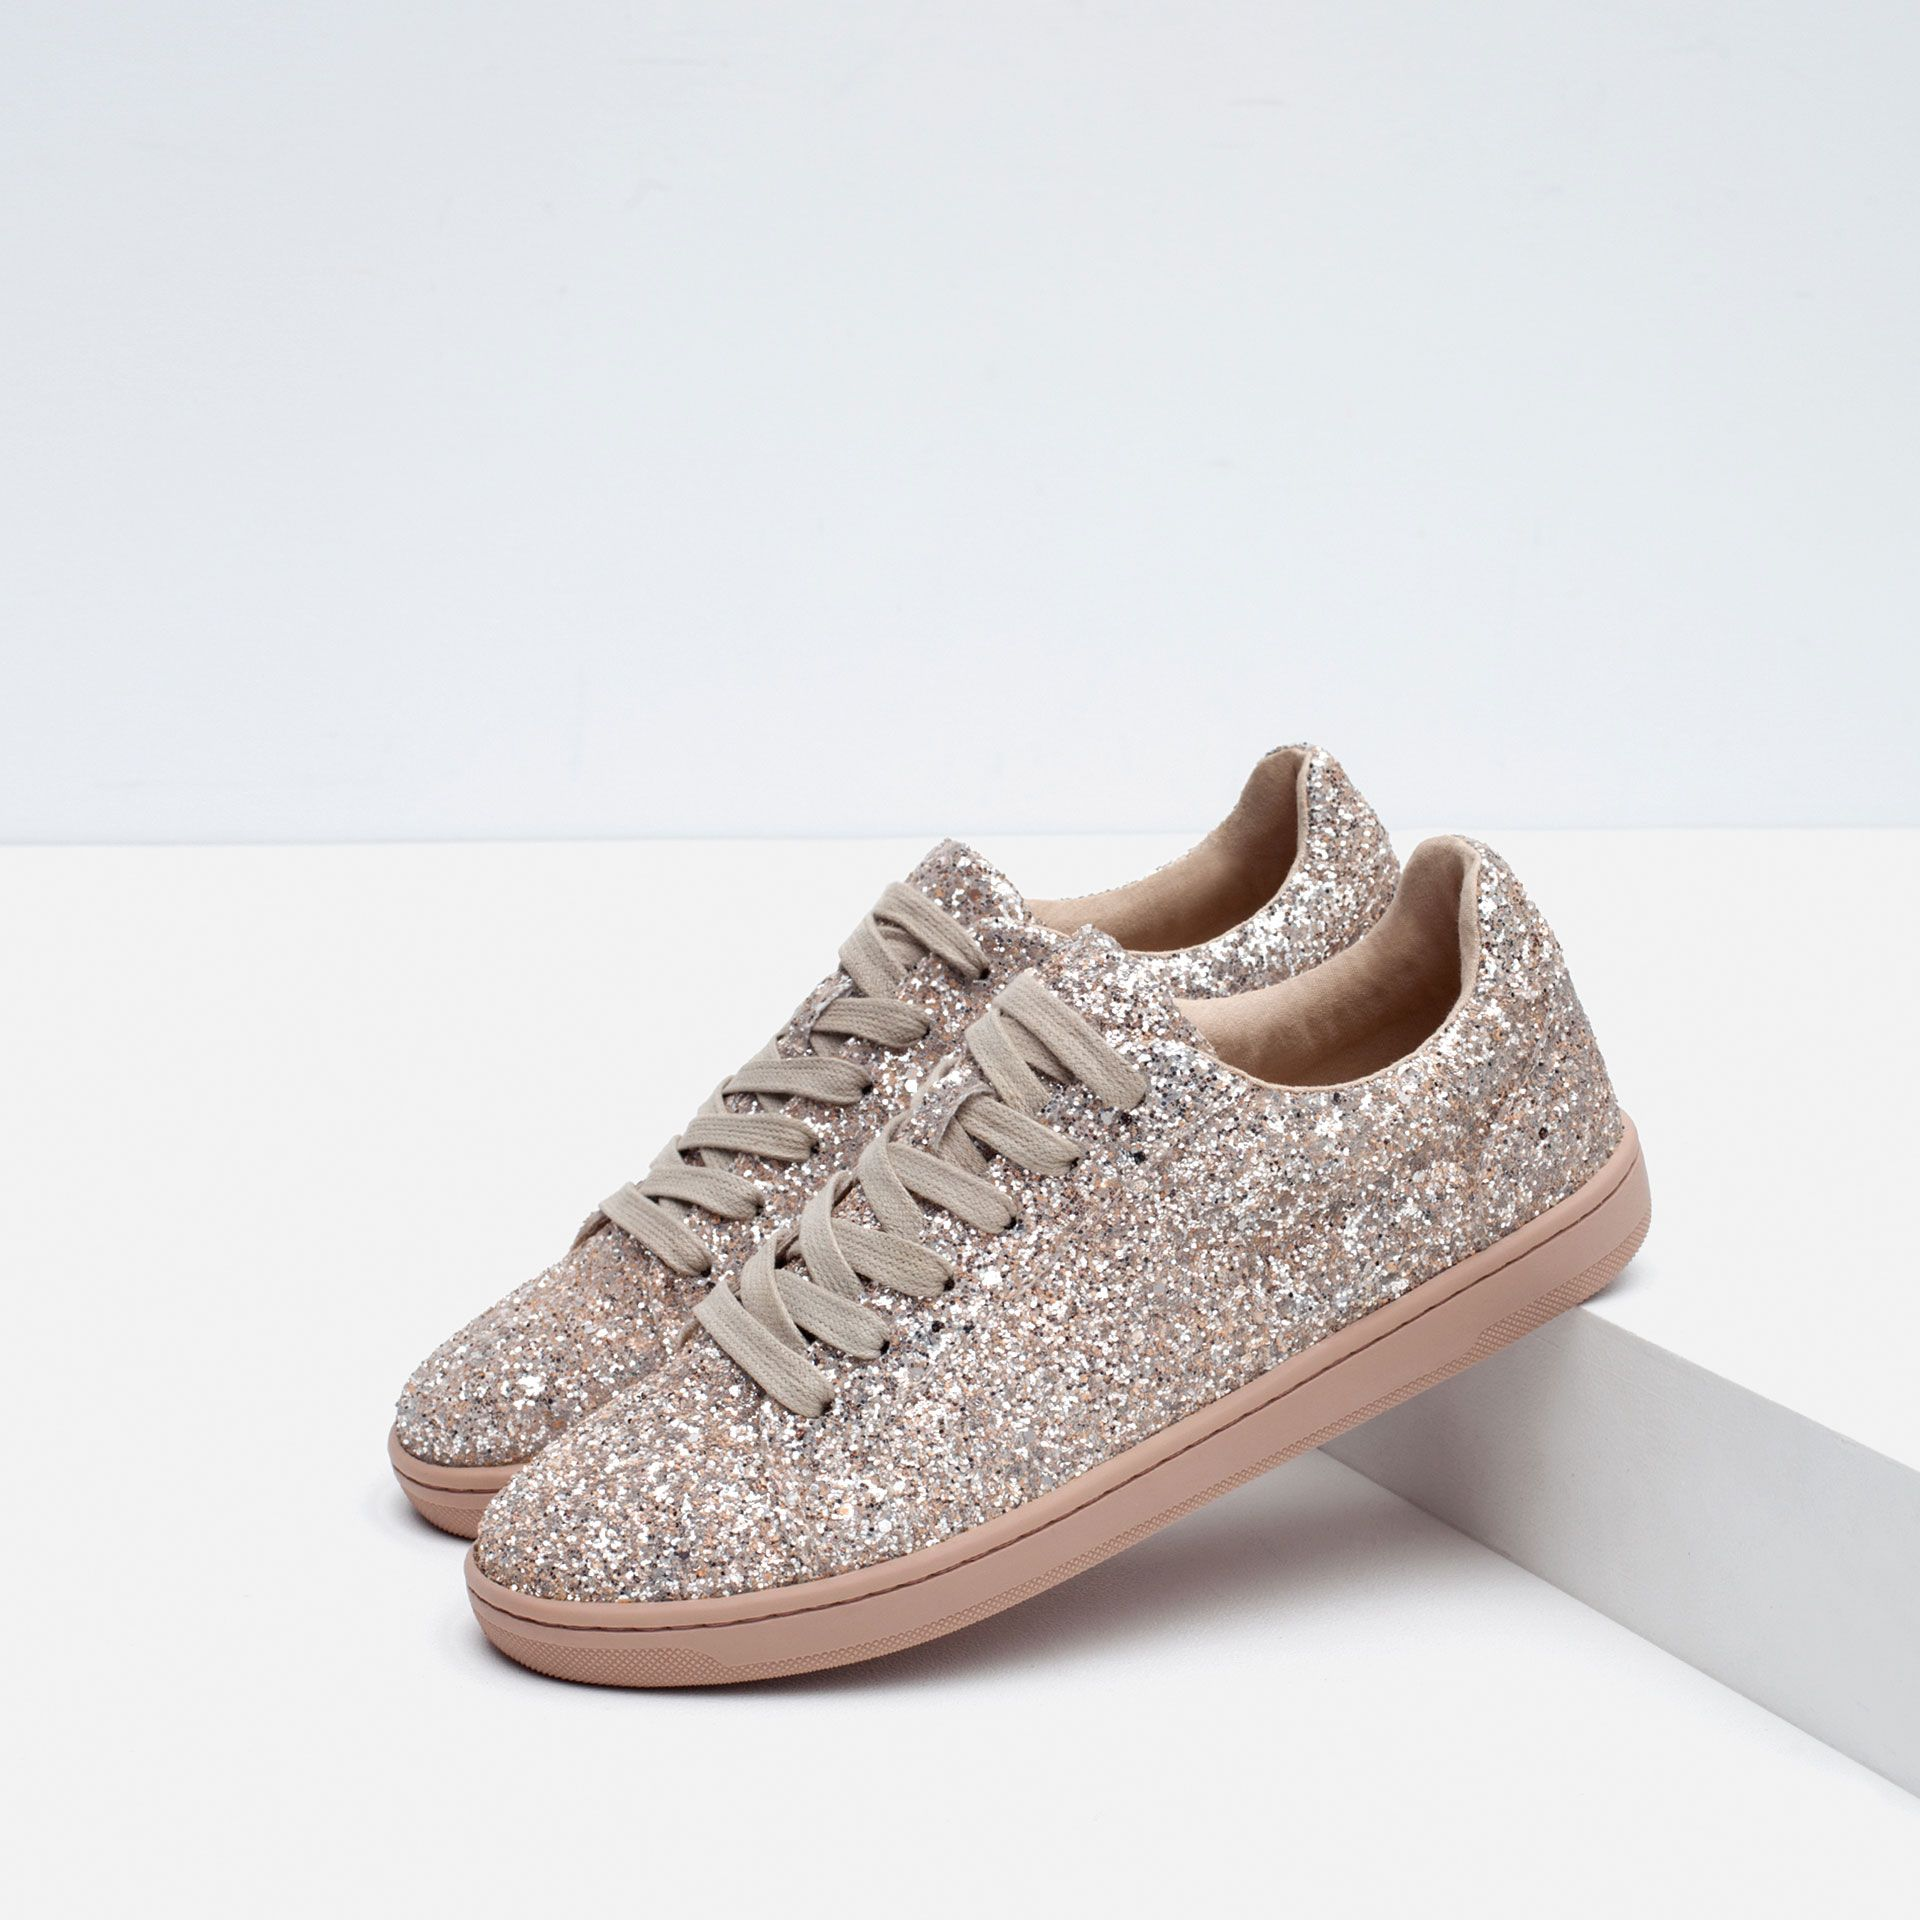 tennis paillettes tout voir chaussures femme zara france shoes pinterest tennis. Black Bedroom Furniture Sets. Home Design Ideas